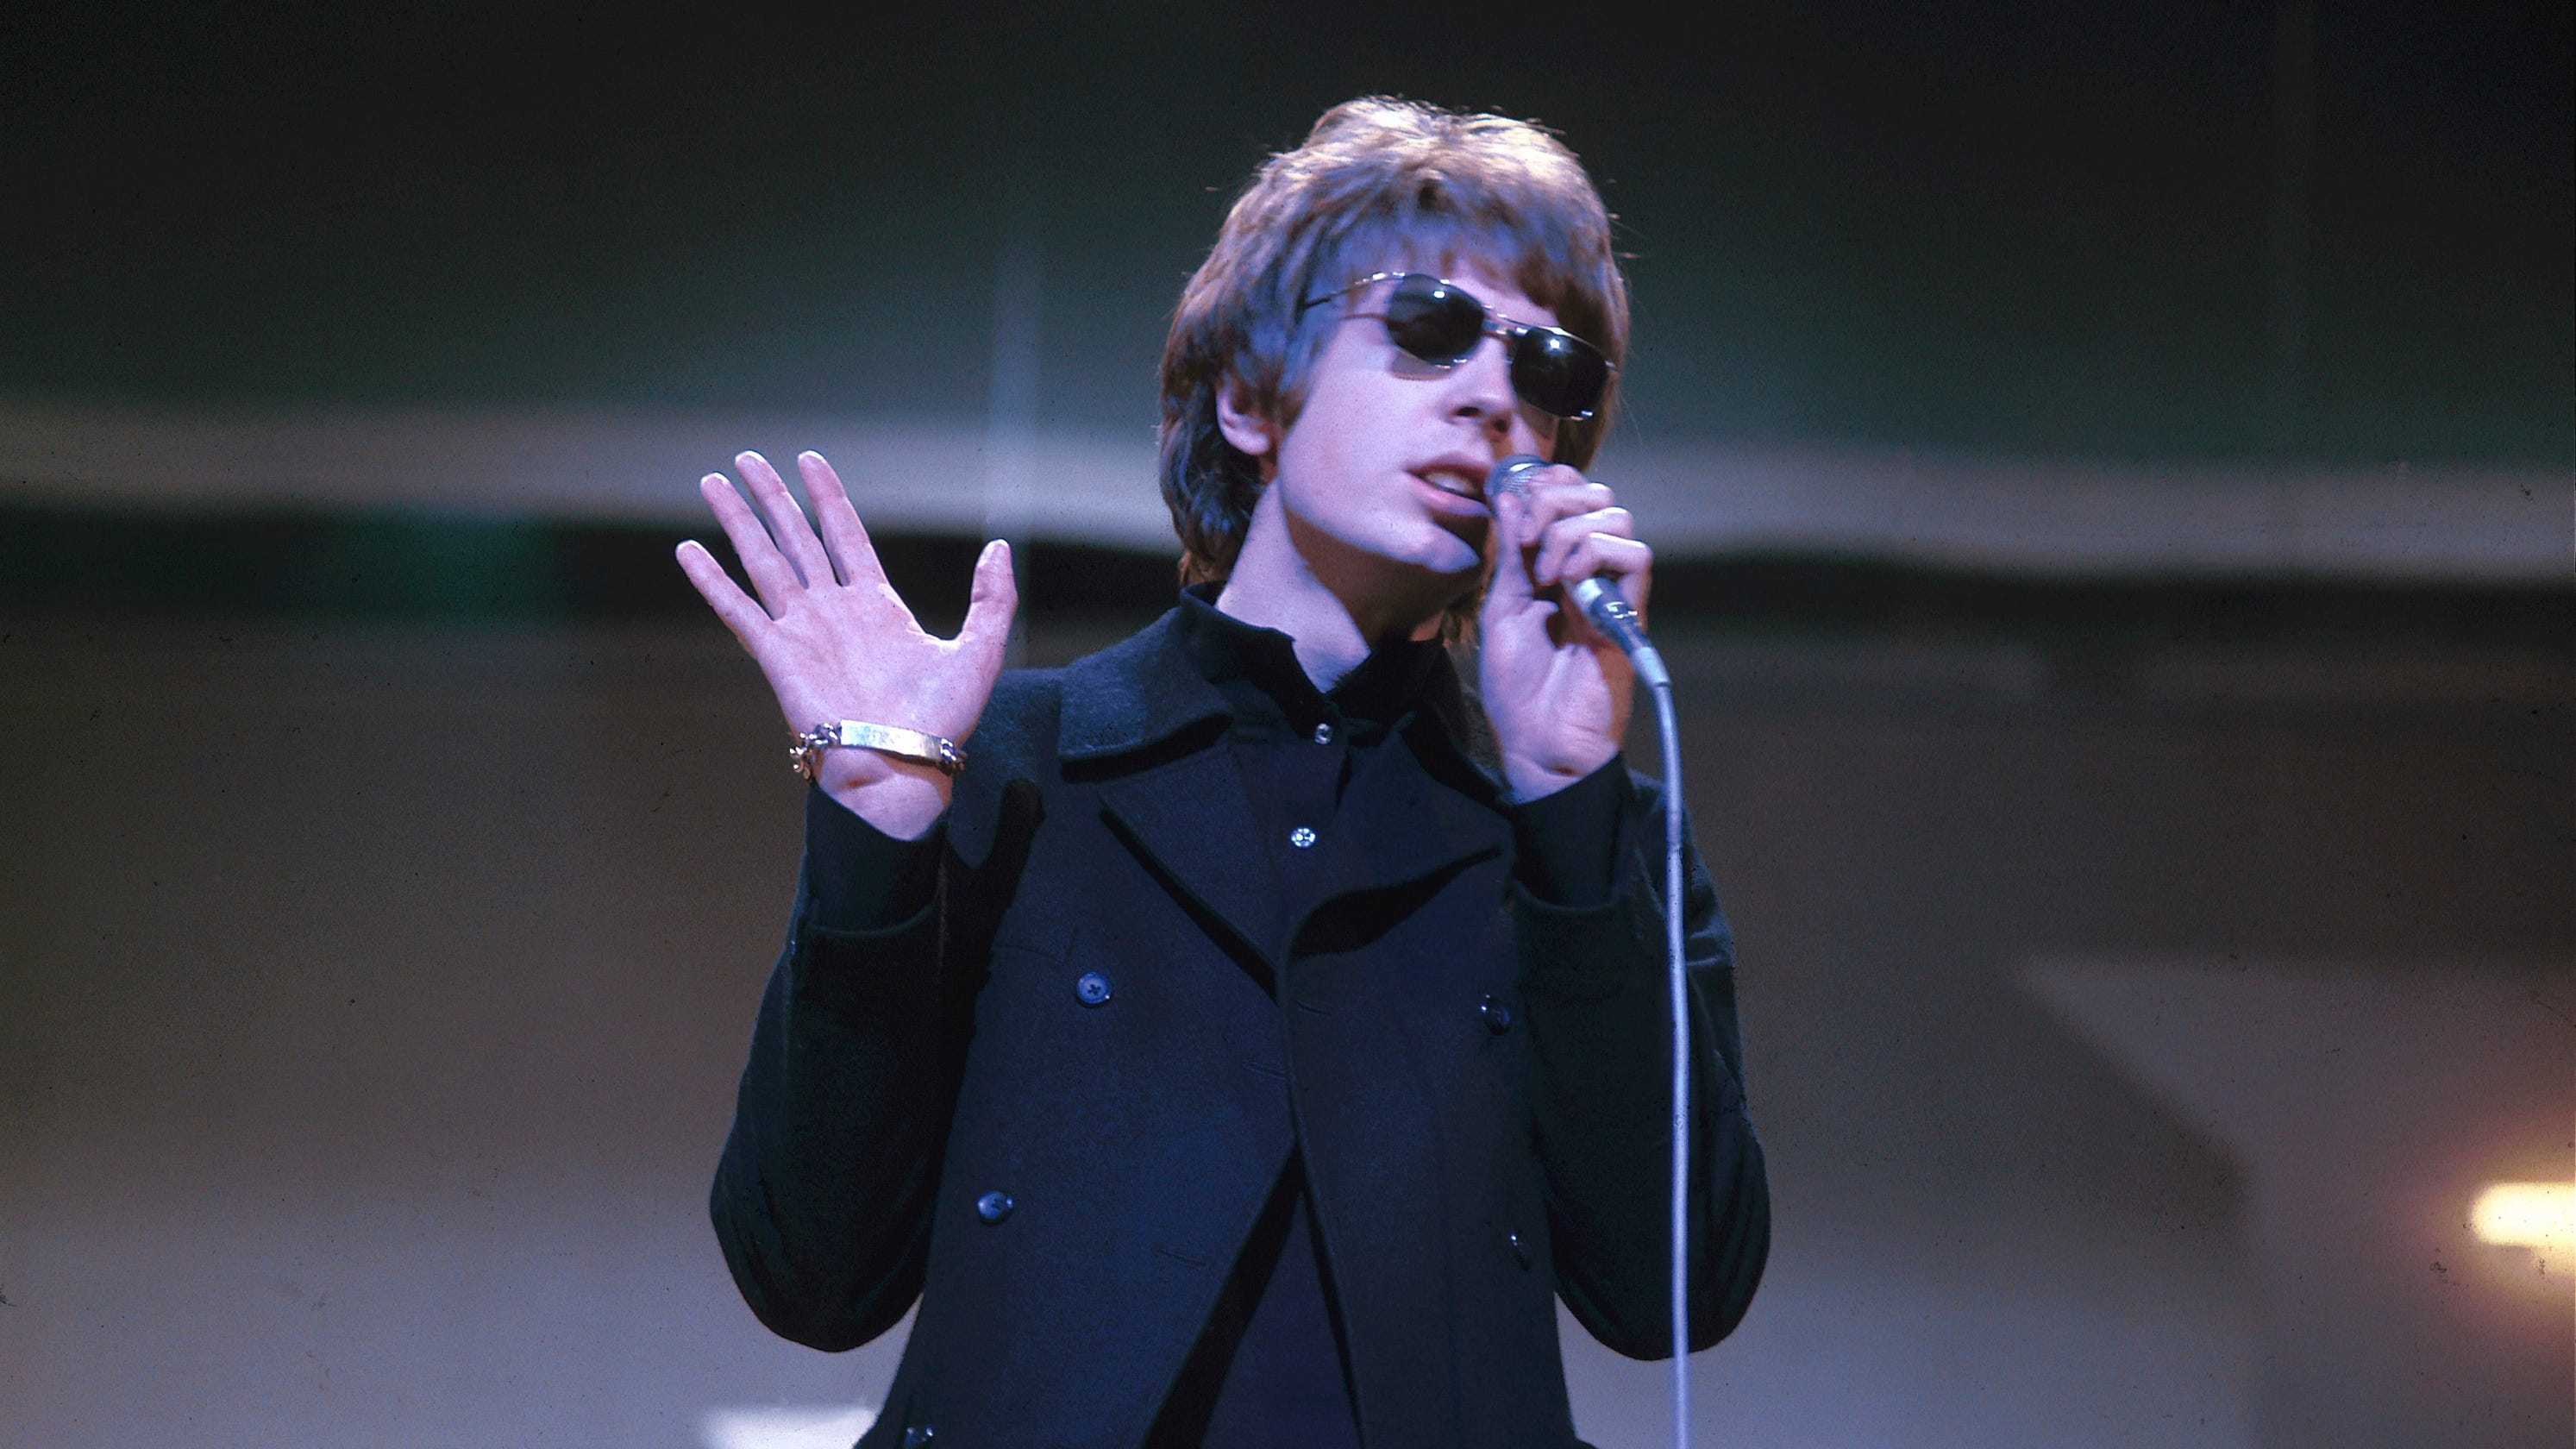 Singer Scott Walker, enigmatic frontman of the Walker Brothers, dies